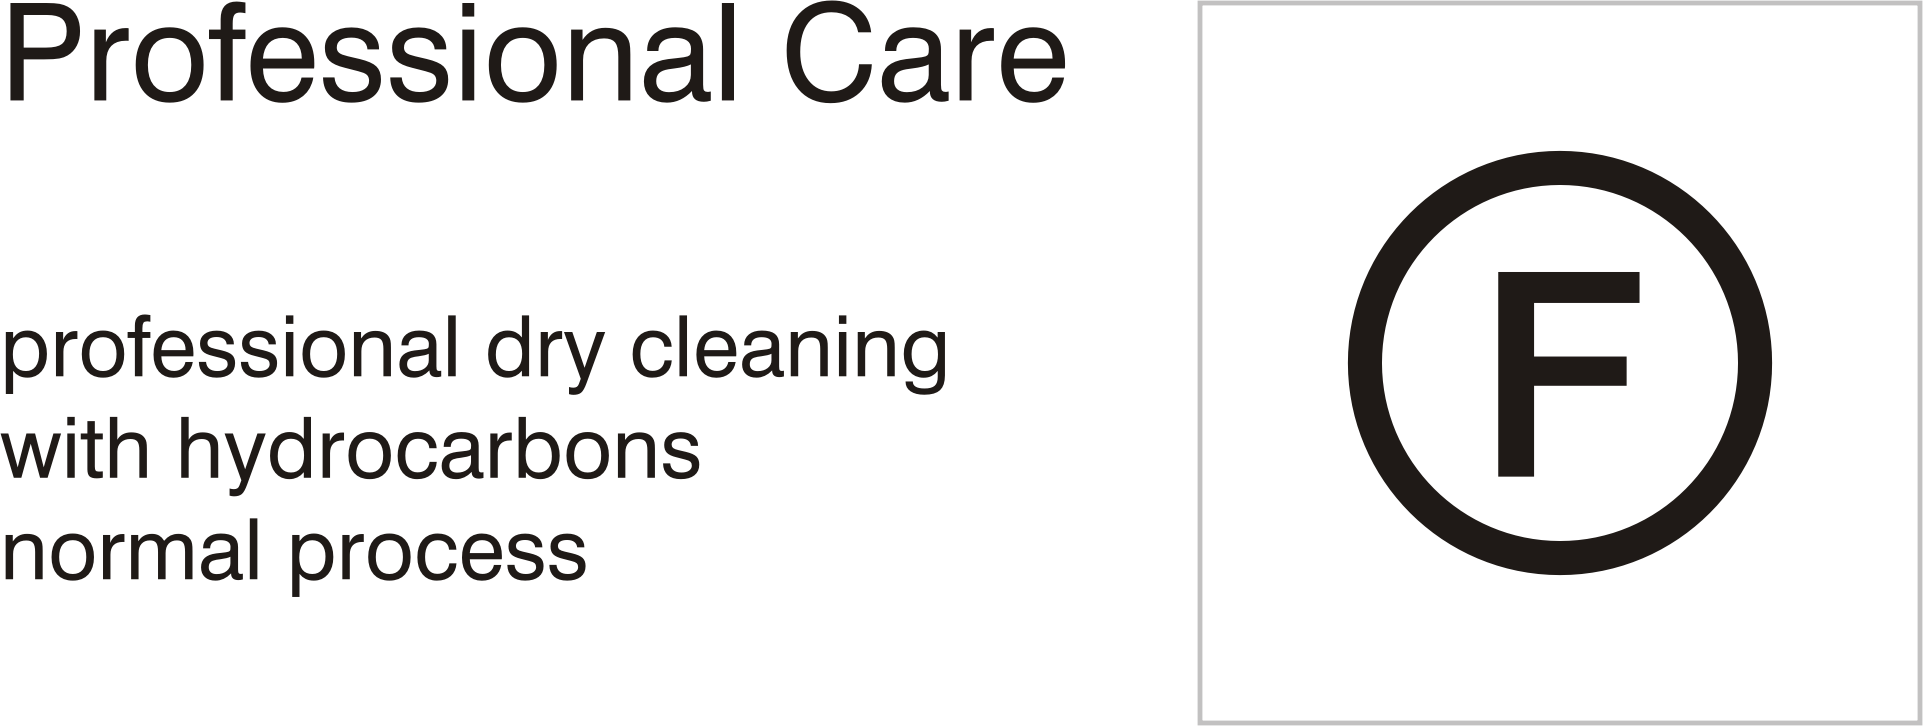 Care symbols, professional care: dry clean with hydrocarbons - normal process by Vanja